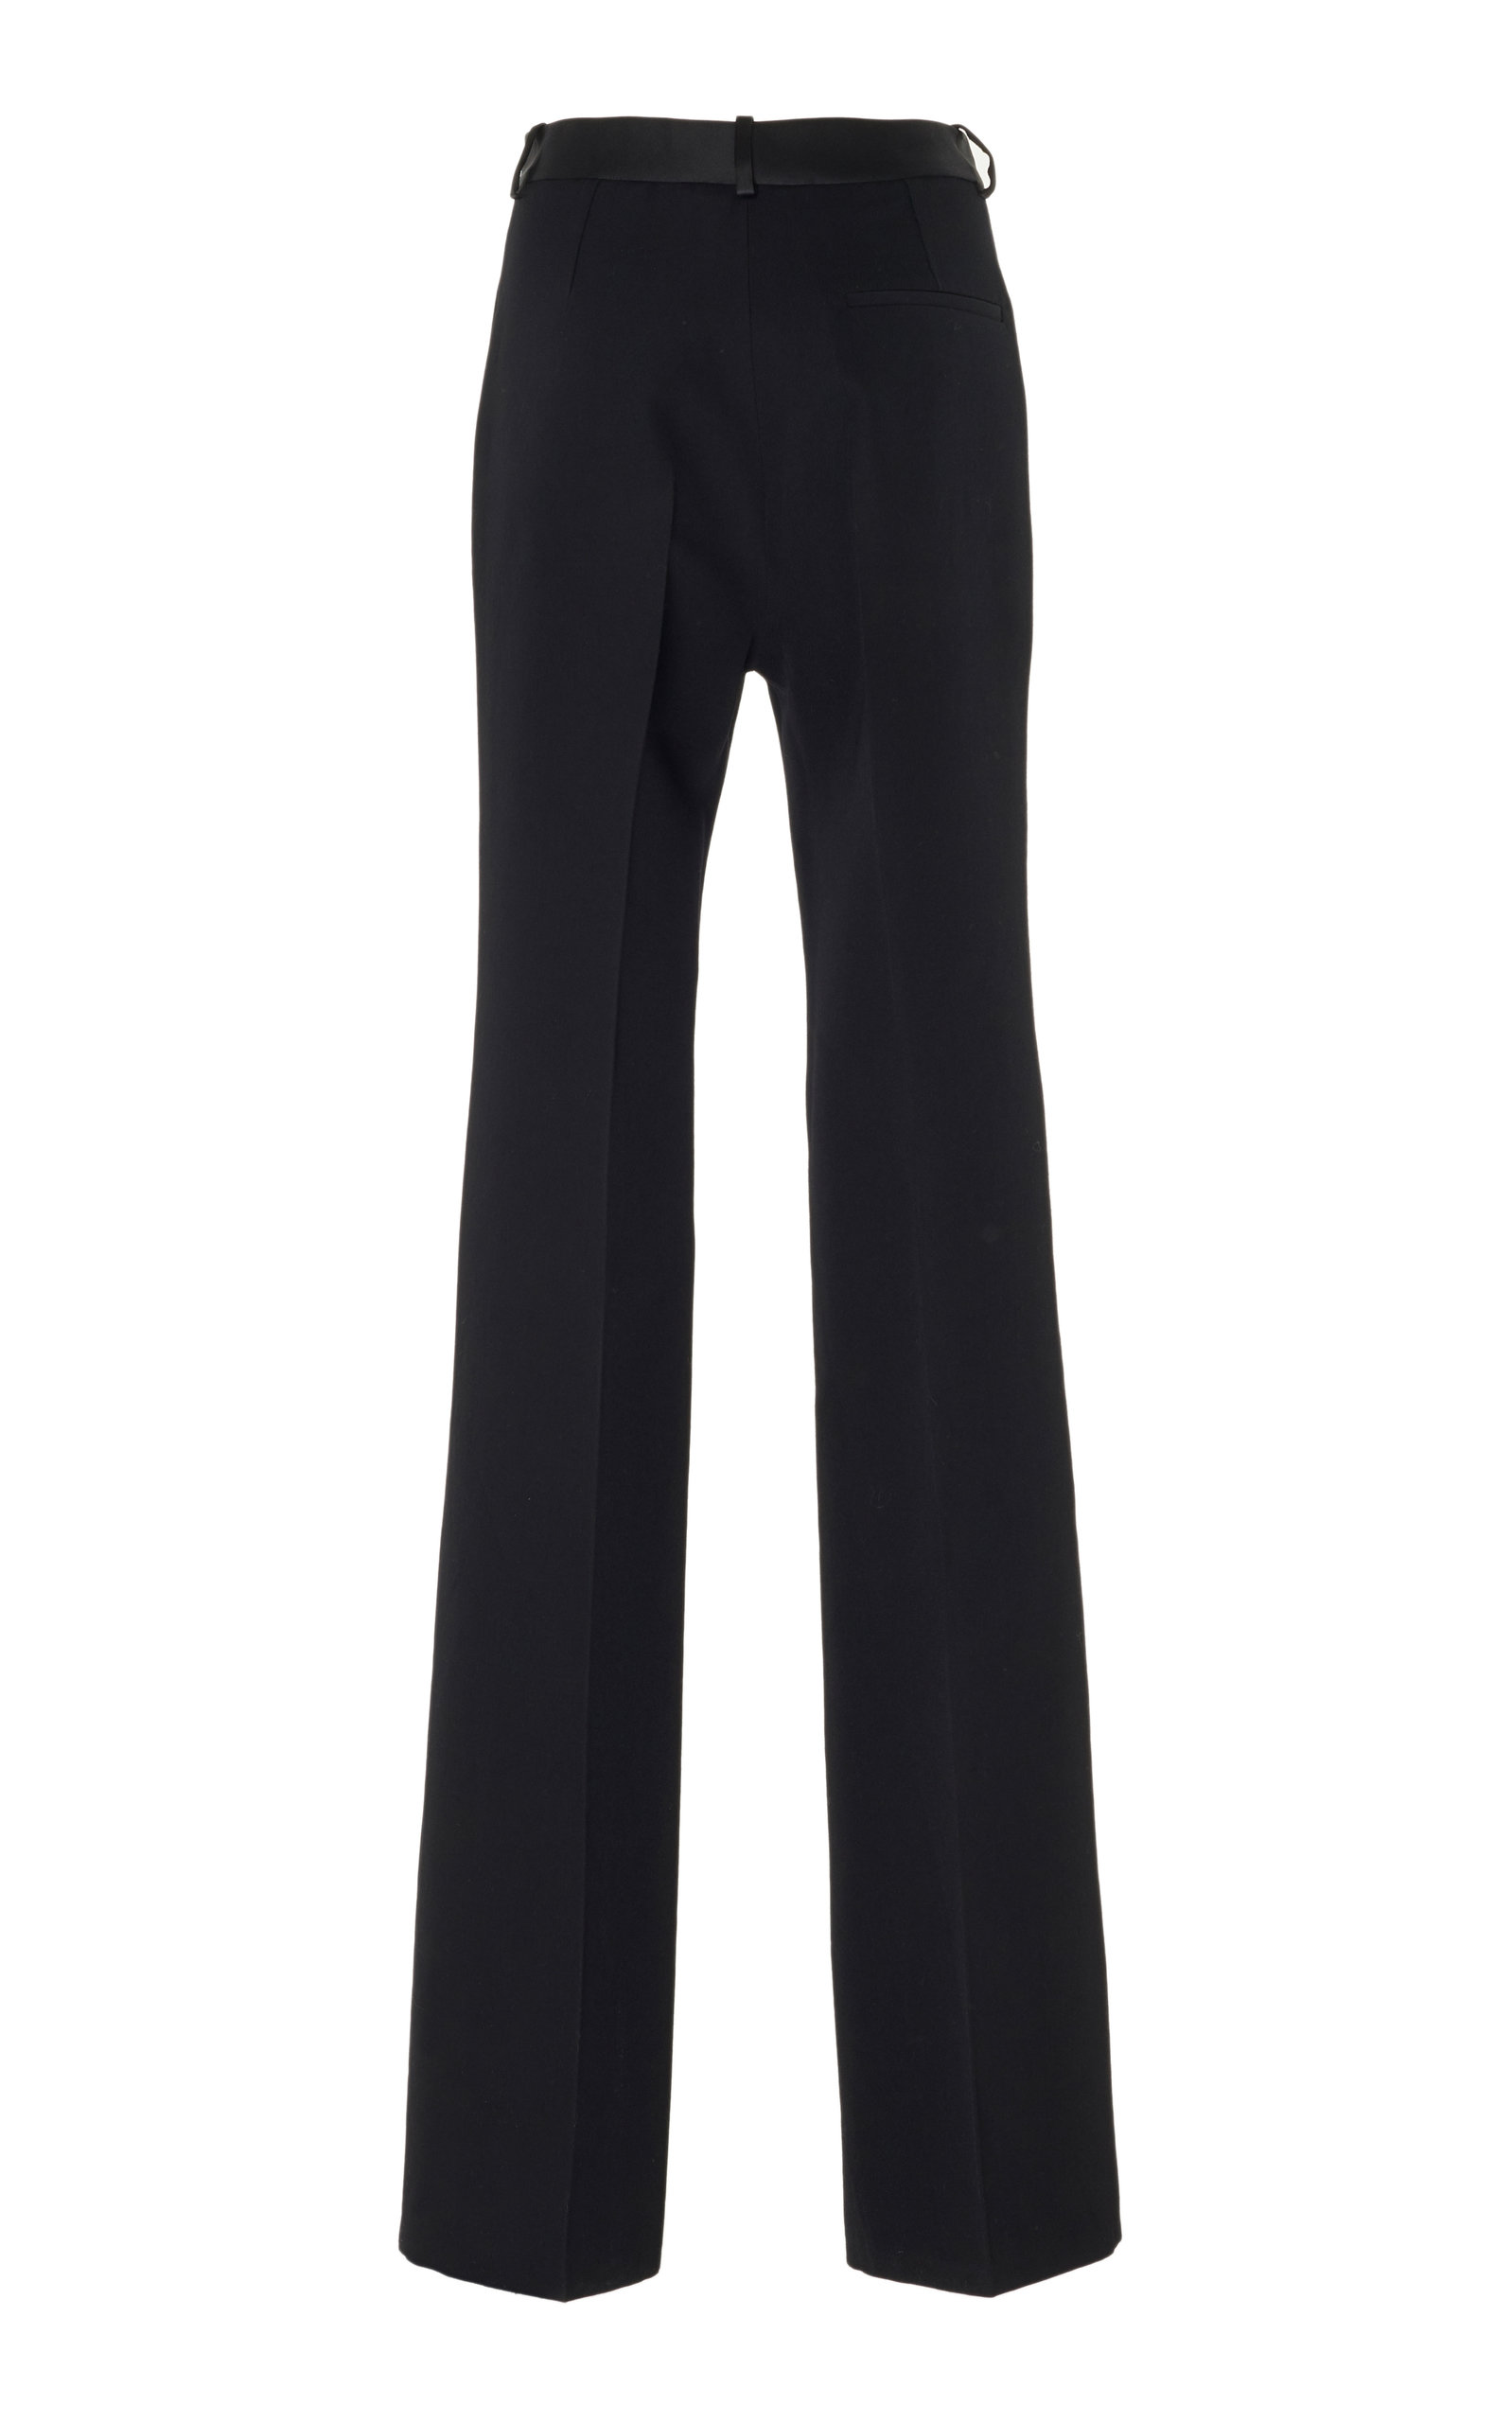 6df6b01a886 large_victoria-beckham-black-high-waisted-wool-wide-leg-pants.jpg